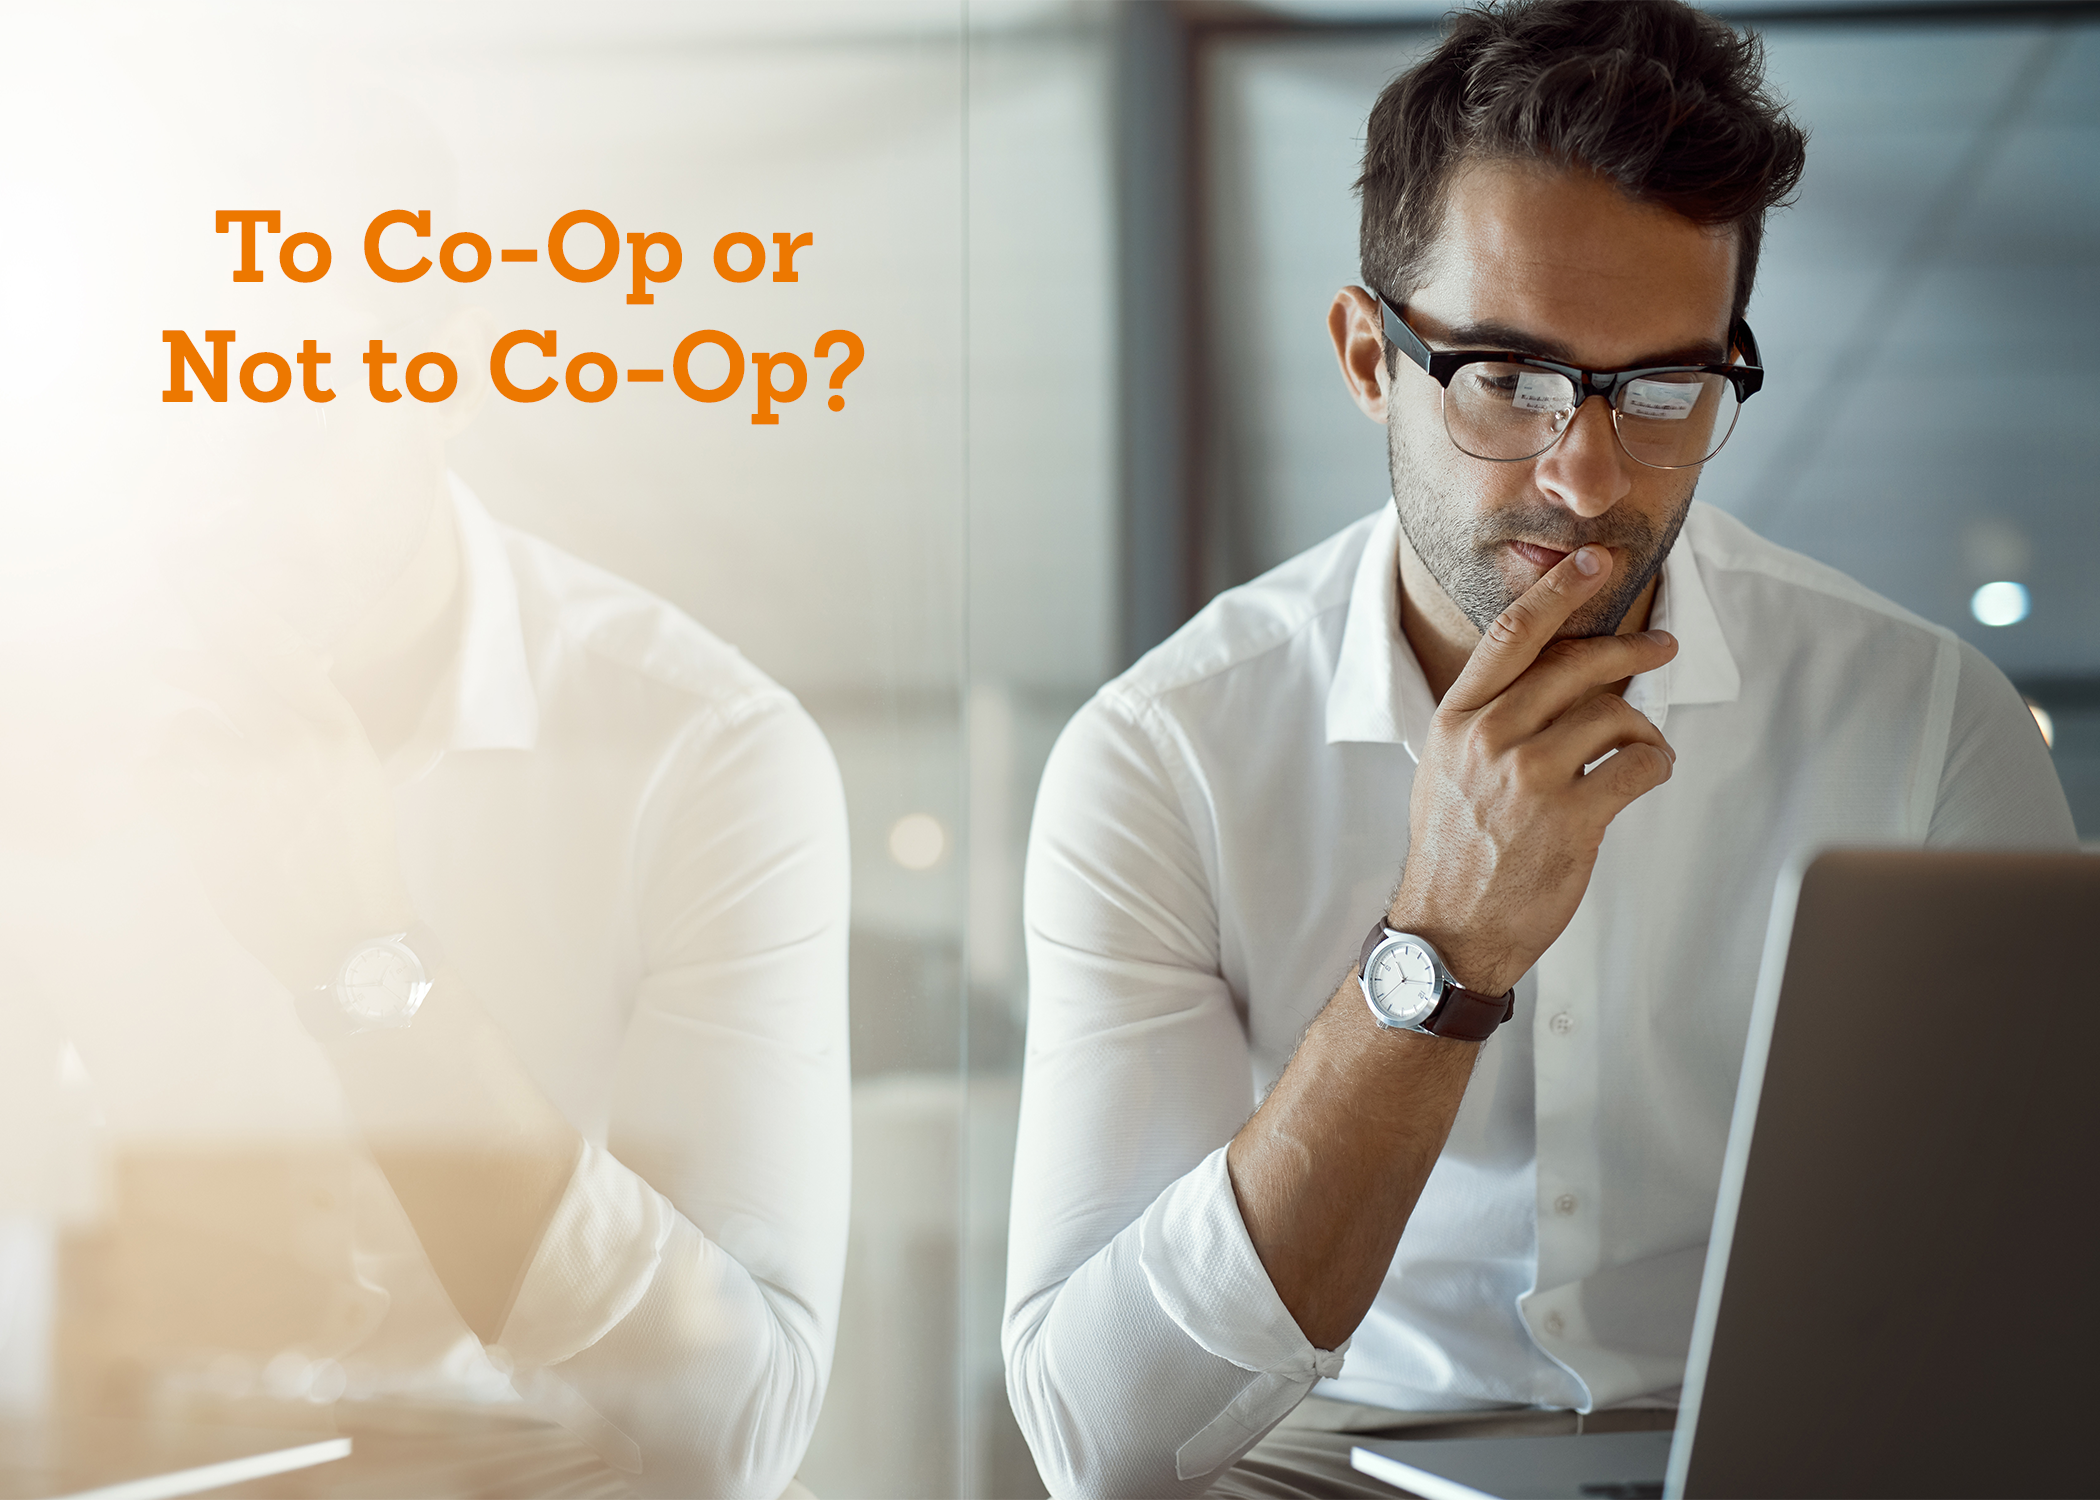 To Co-Op or Not to Co-Op?